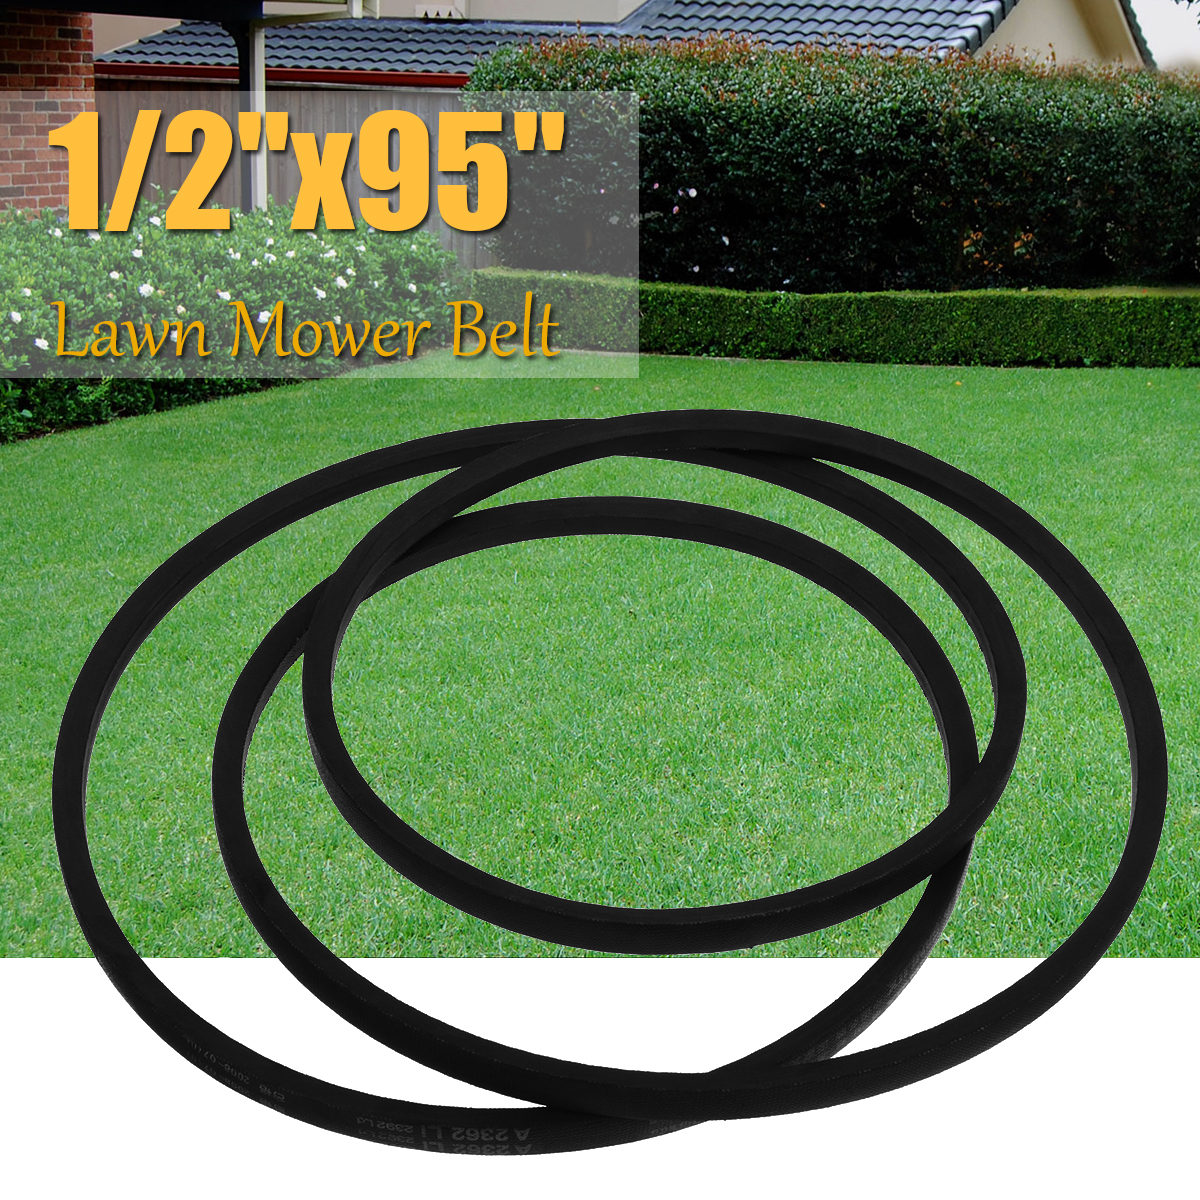 A93V Belt 13mm 1/2 x 95 Industry Lawn Mower Belt Black Rubber Tapes for Yard Machine Lawn Mower K Type Vee V Type Belt картридж струйный cactus cs cli471xlc голубой для canon mg5740 mg6840 mg7740 cactus